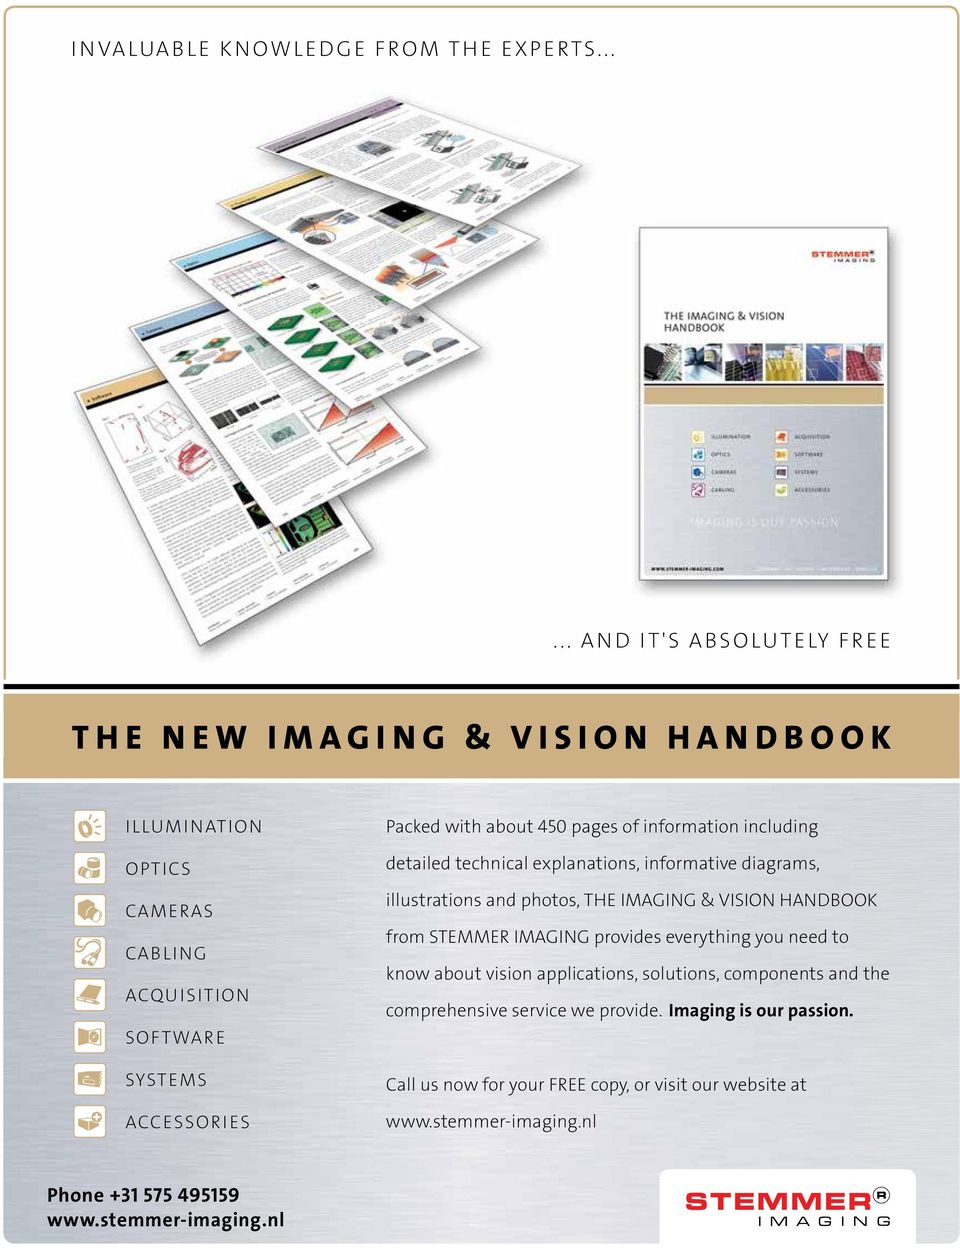 450 pages of information including detailed technical explanations, informative diagrams, illustrations and photos, THE IMAGING & VISION HANDBOOK from STEMMER